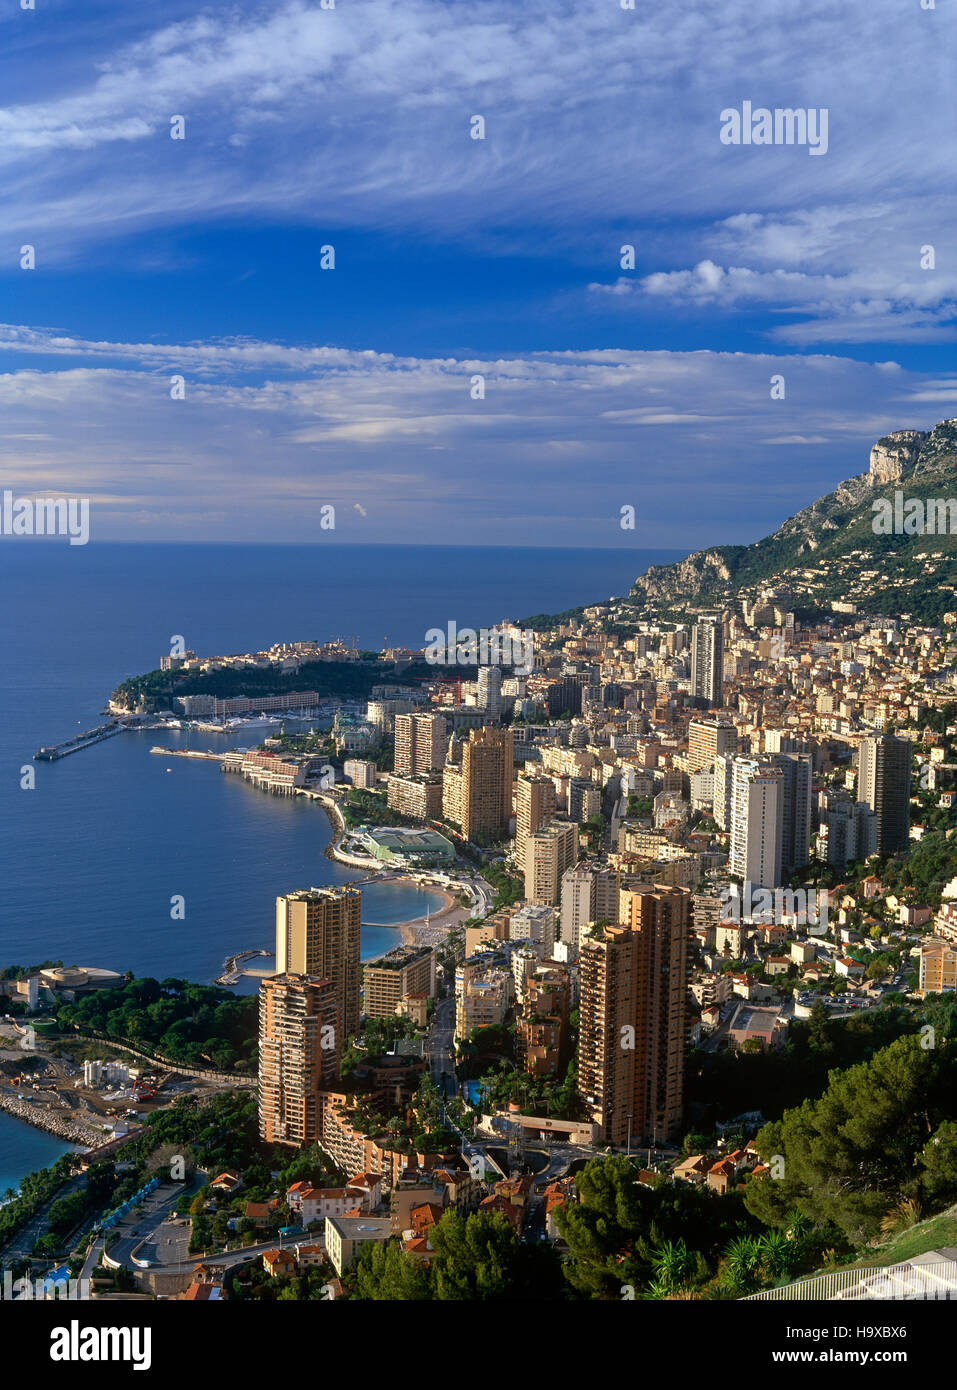 Elevated view of Monte Carlo, Monaco - Stock Image